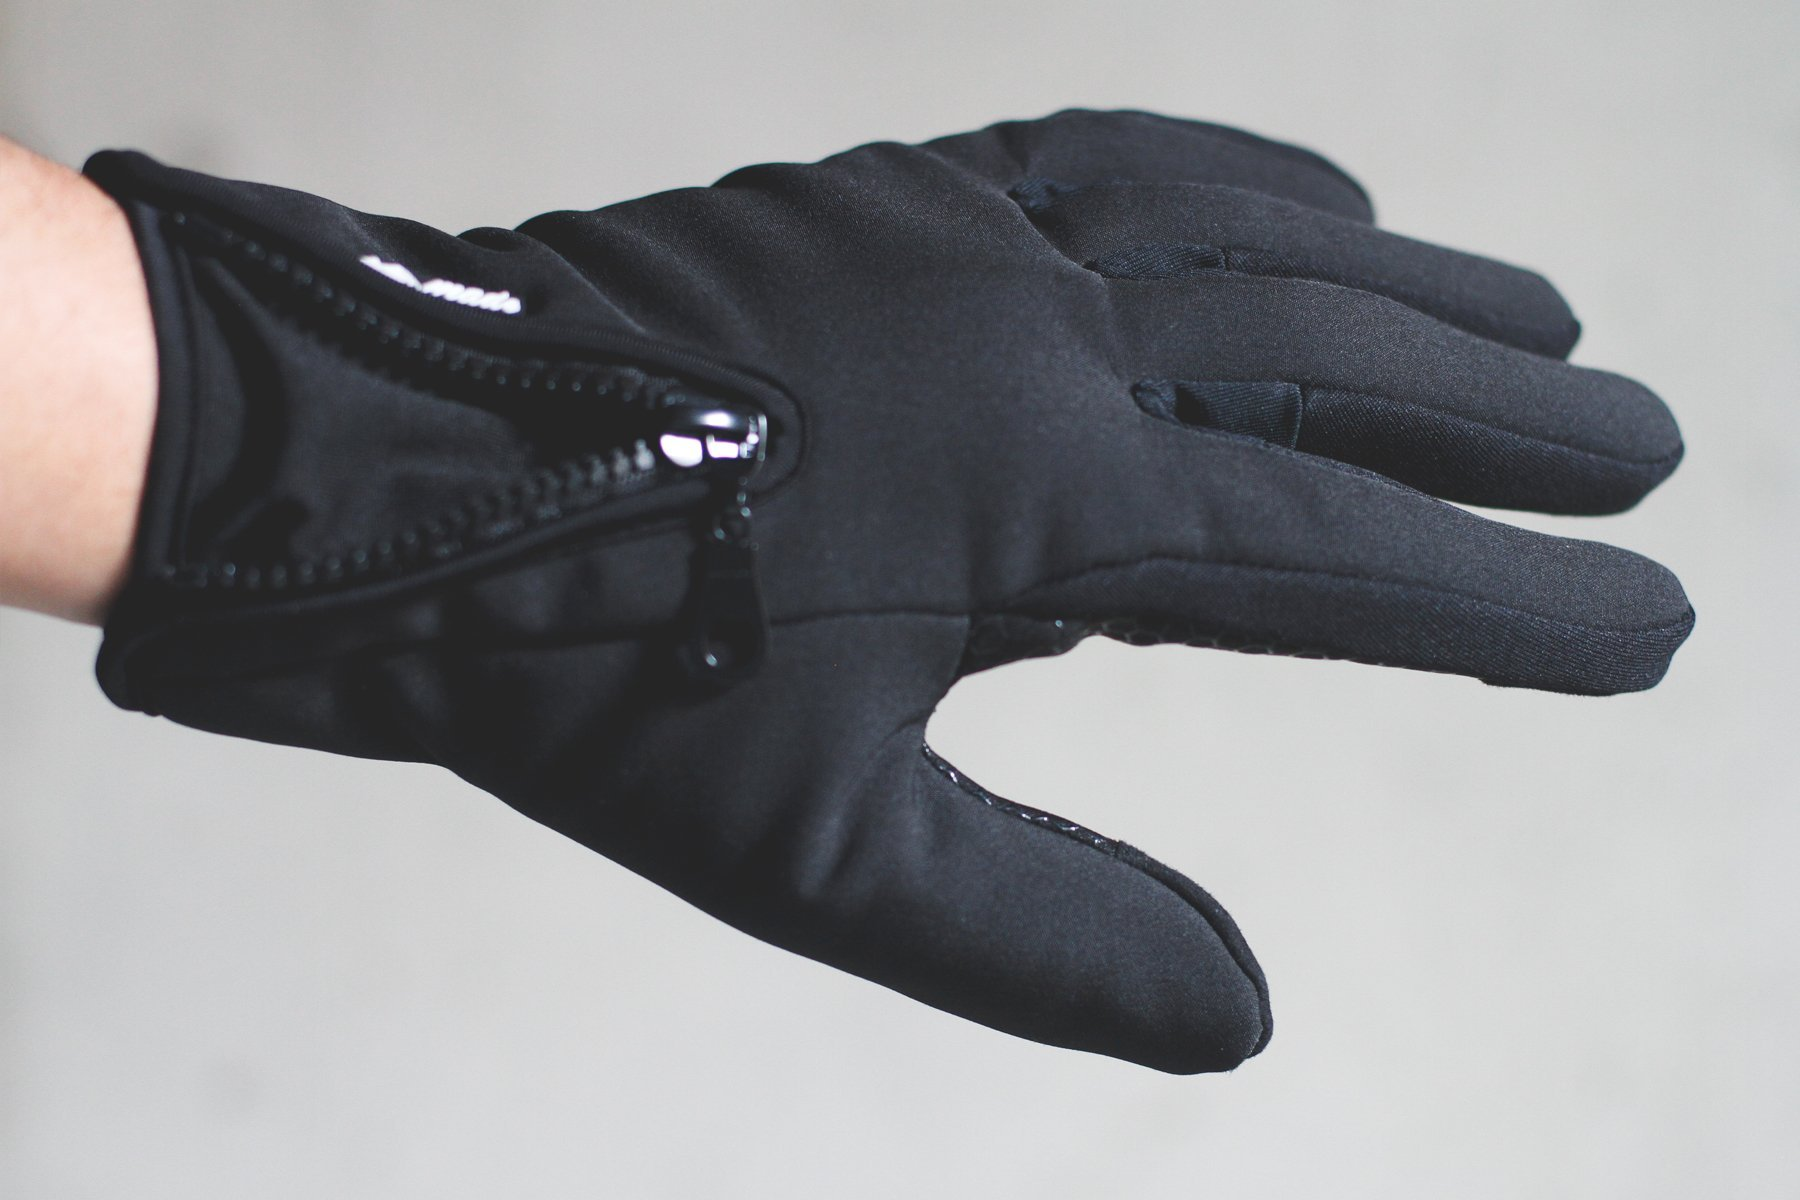 Mountain Made Cold Weather Gloves for Men and Women 2.0 with NEW UPGRADED ZIPPPERS,black,large by Mountain Made (Image #4)